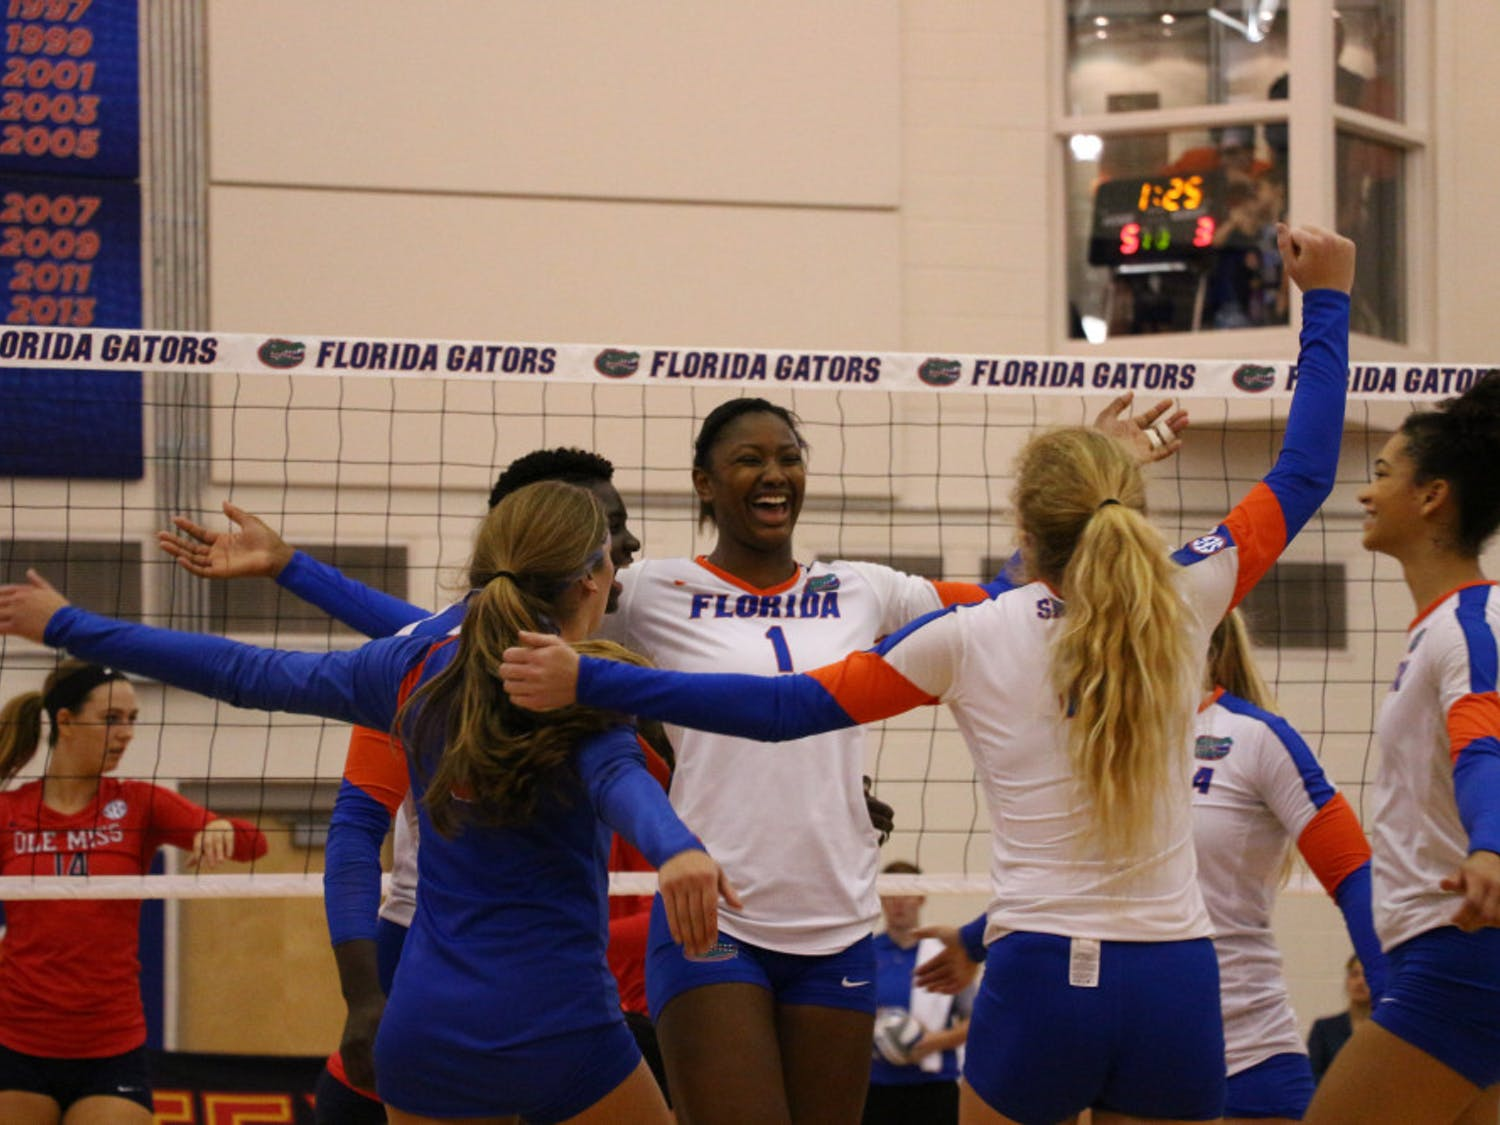 Rhamat Alhassan (1) celebrates with teammates during Florida's 3-0 win over Ole Miss on Oct. 28, 2016, in the Lemerand Center.